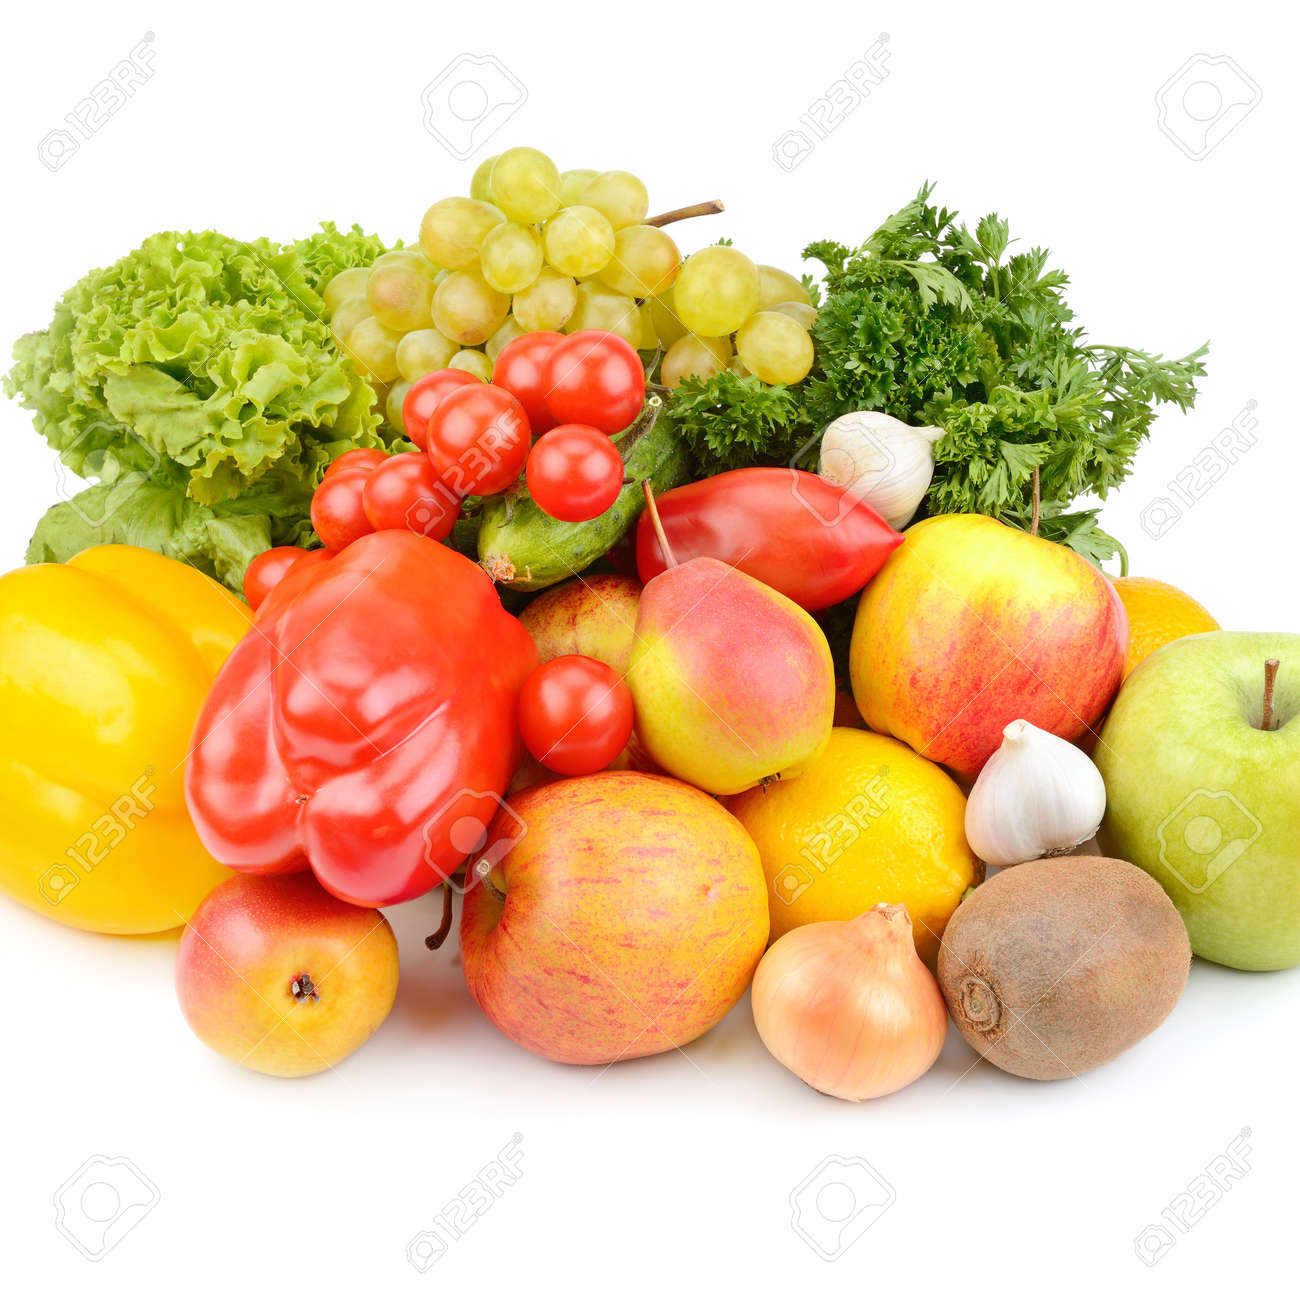 Fruits and vegetables isolated on white - 122386112